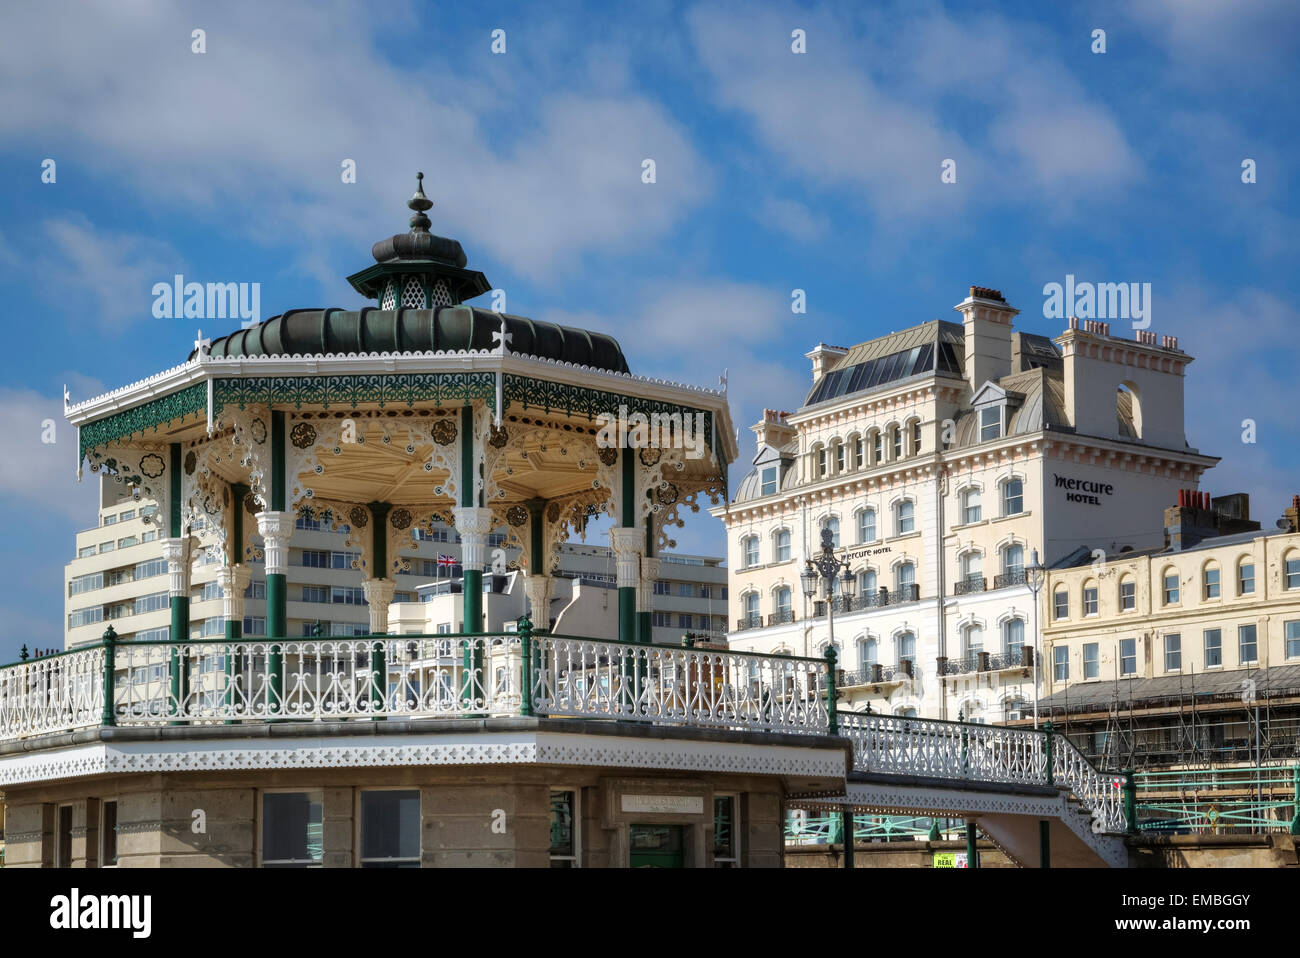 Bandstand, Brighton, Sussex, England, United Kingdom - Stock Image